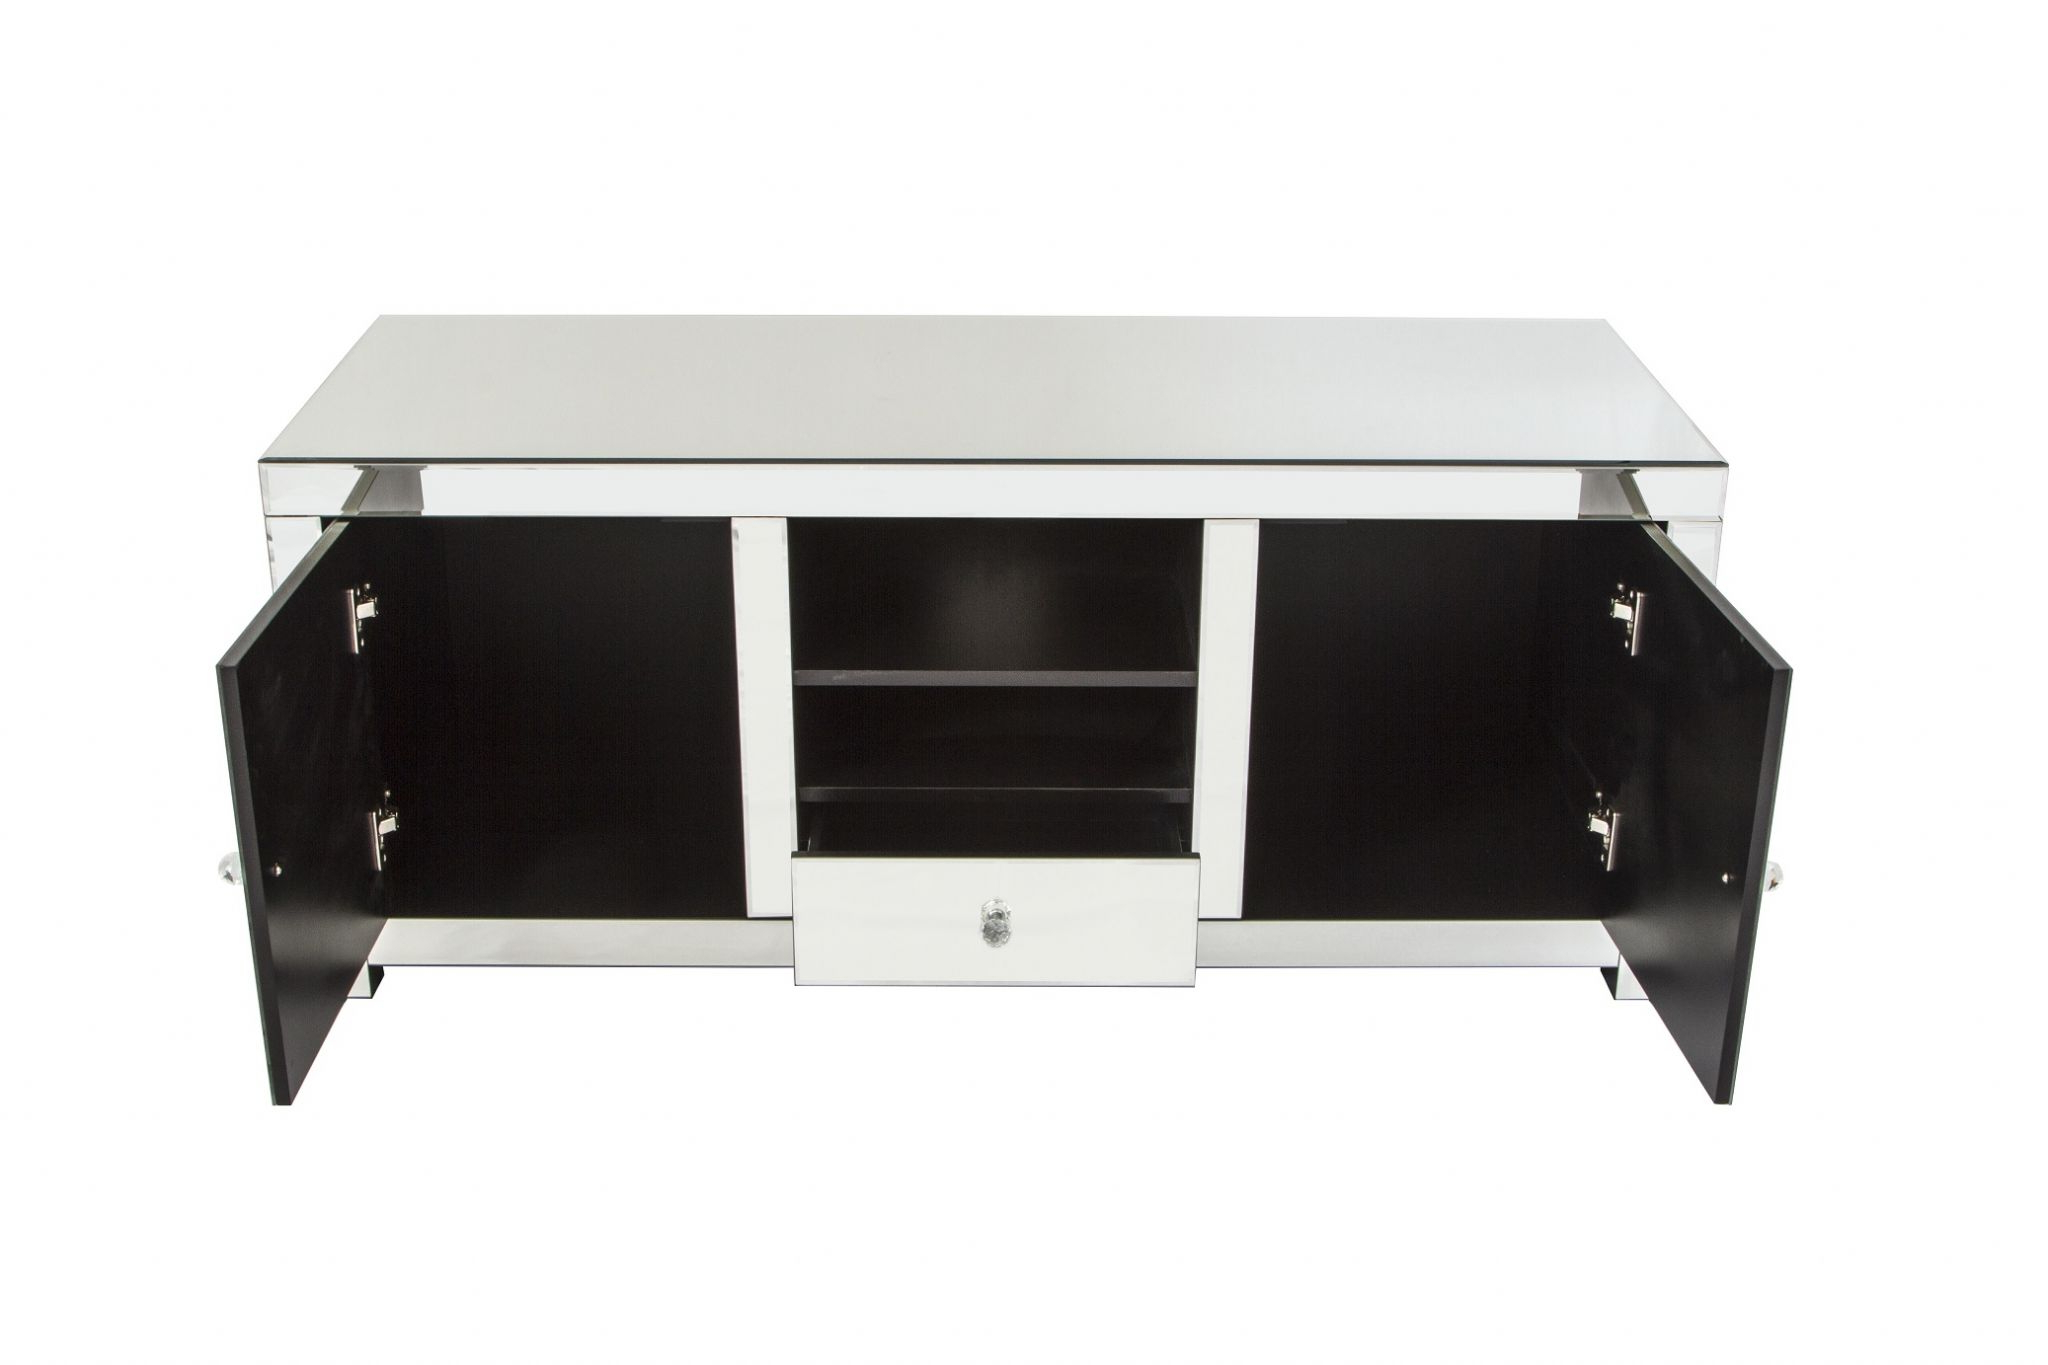 Mirrored Contemporary Furniture – Mirrored Tv Entertainment Unit With Regard To Most Popular Mirrored Furniture Tv Unit (View 11 of 20)